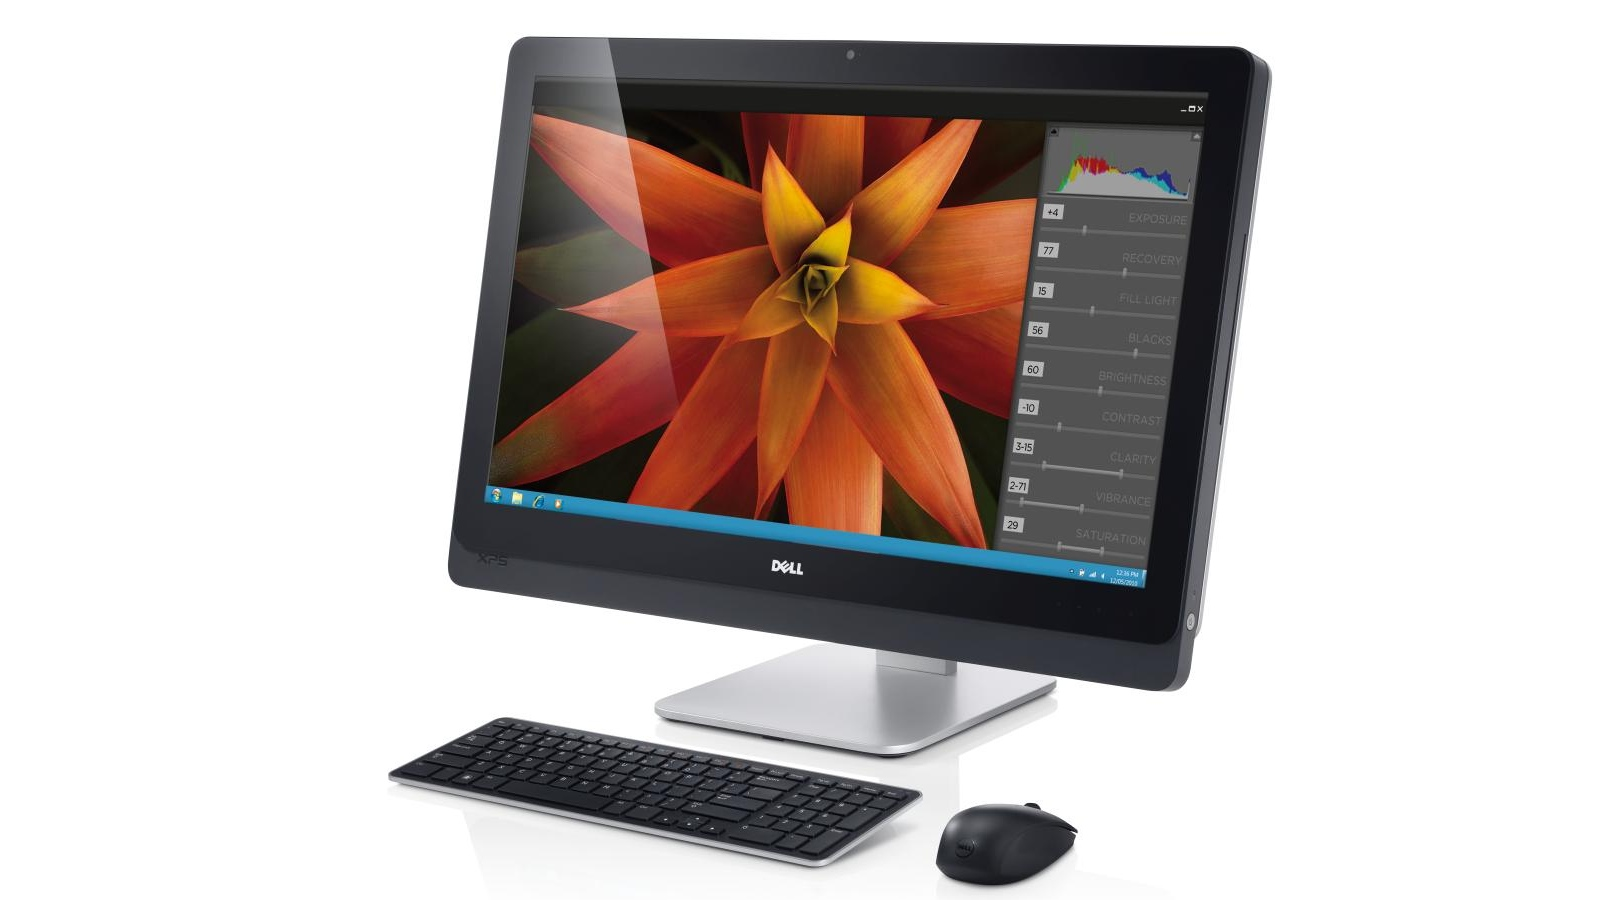 Dell XPS One 27: A Massive, All-In-One Slab Of Ivy Bridge